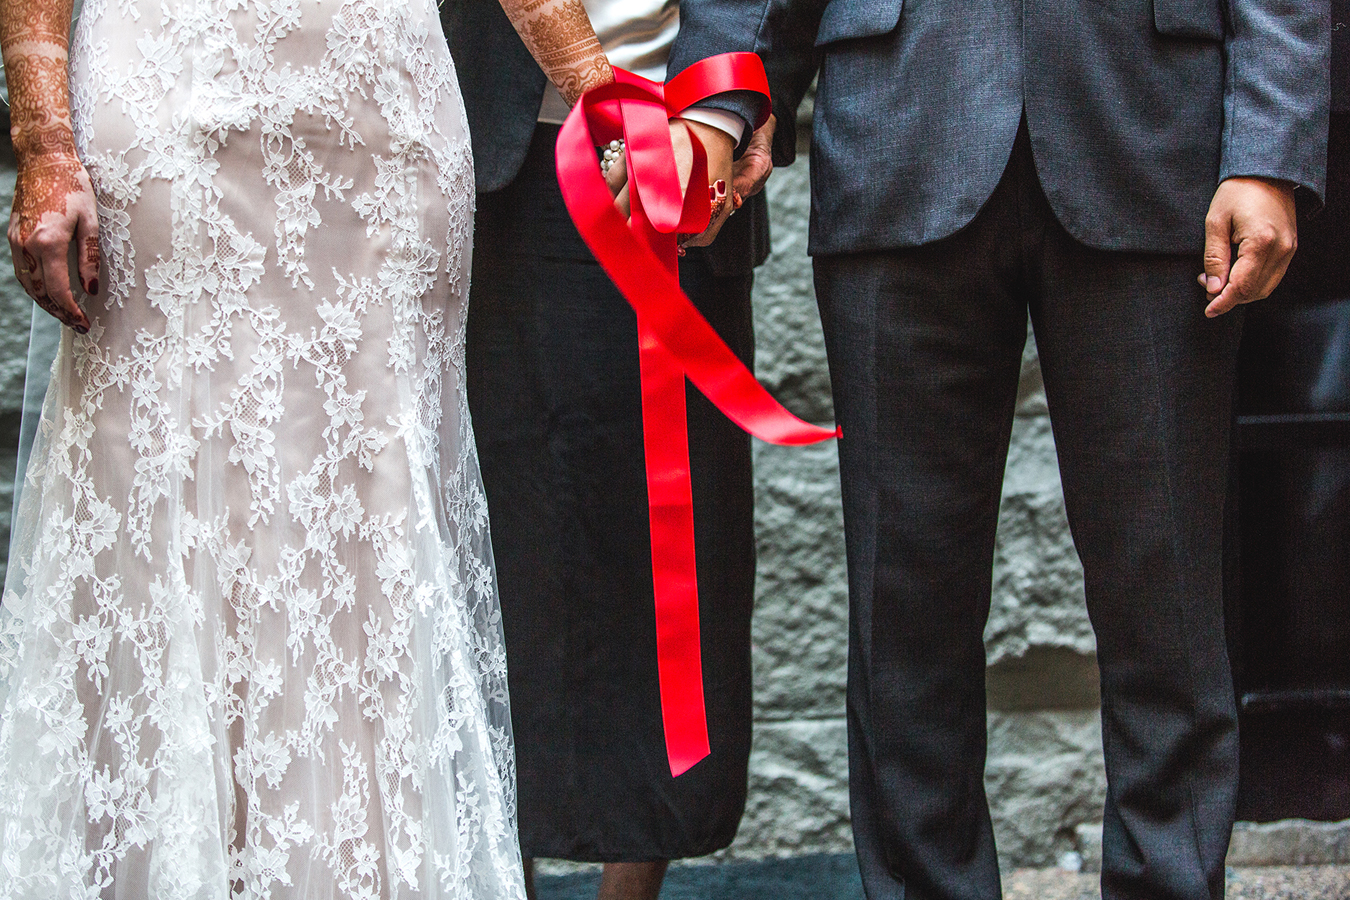 interracial hand fasting ceremony at a wedding in Vancouver BC